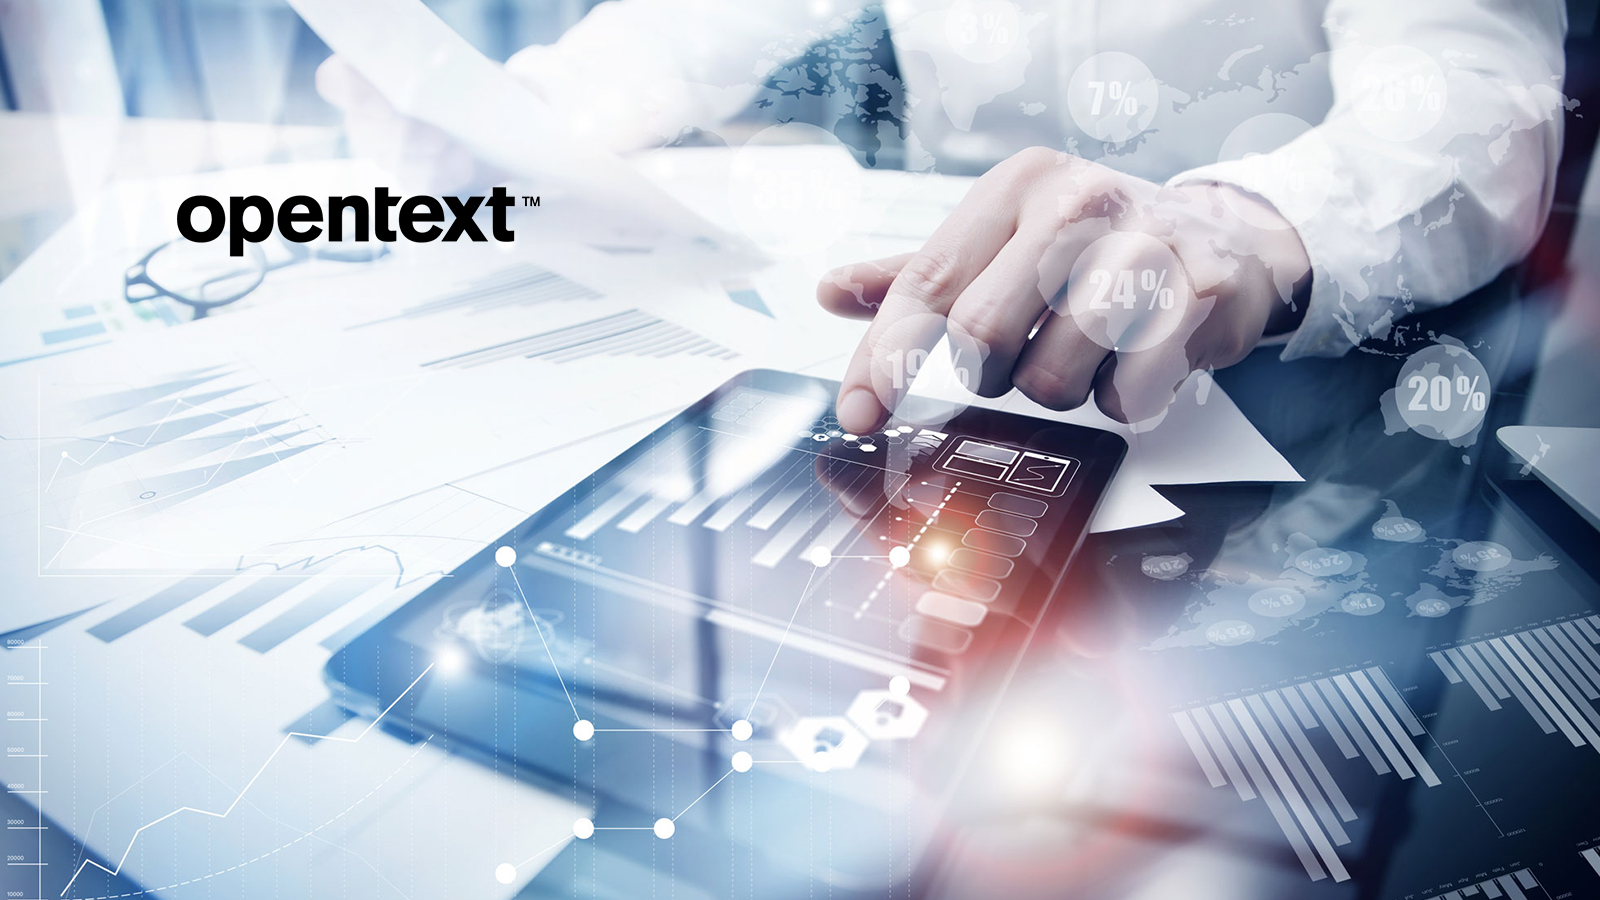 OpenText Partners With Google Cloud For Connected Enterprise